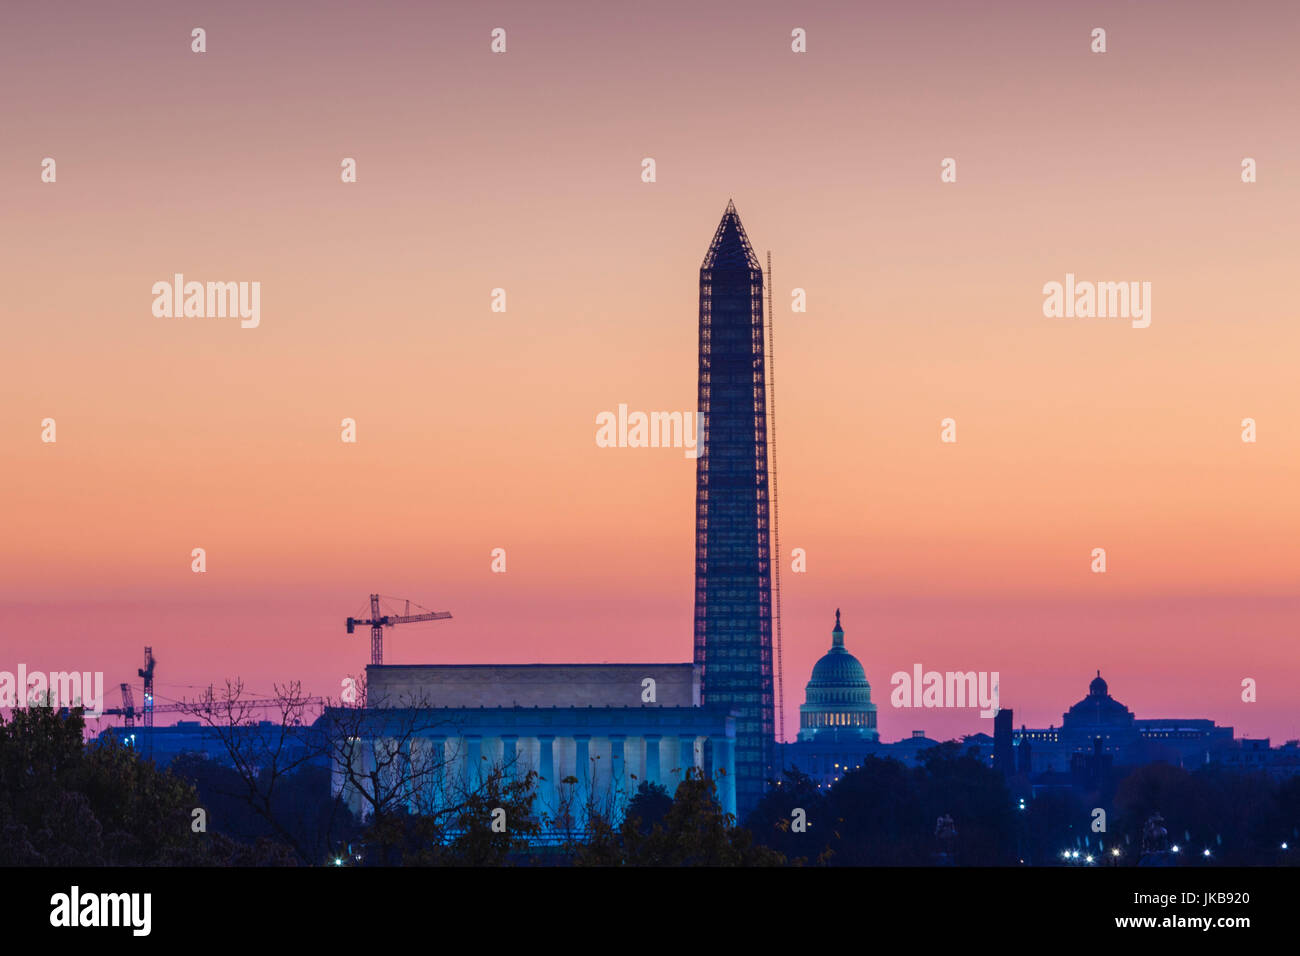 USA, Washington DC, le Lincoln Memorial, le Washington Monument et Capitole, Dawn Photo Stock